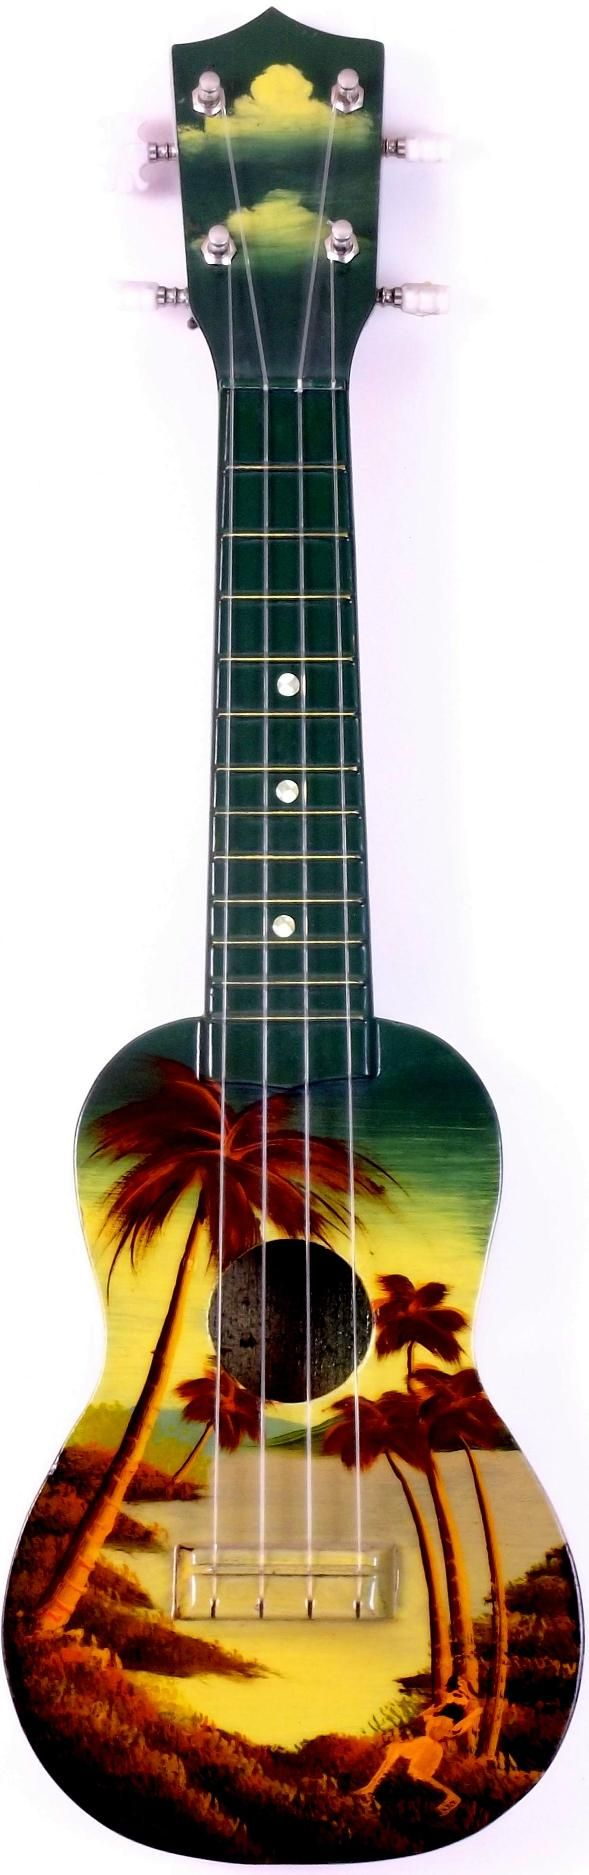 1950/60's Hilo Hand Painted Tourist Hawaiian Ukulele (Its yellowed quite a bit over the years)